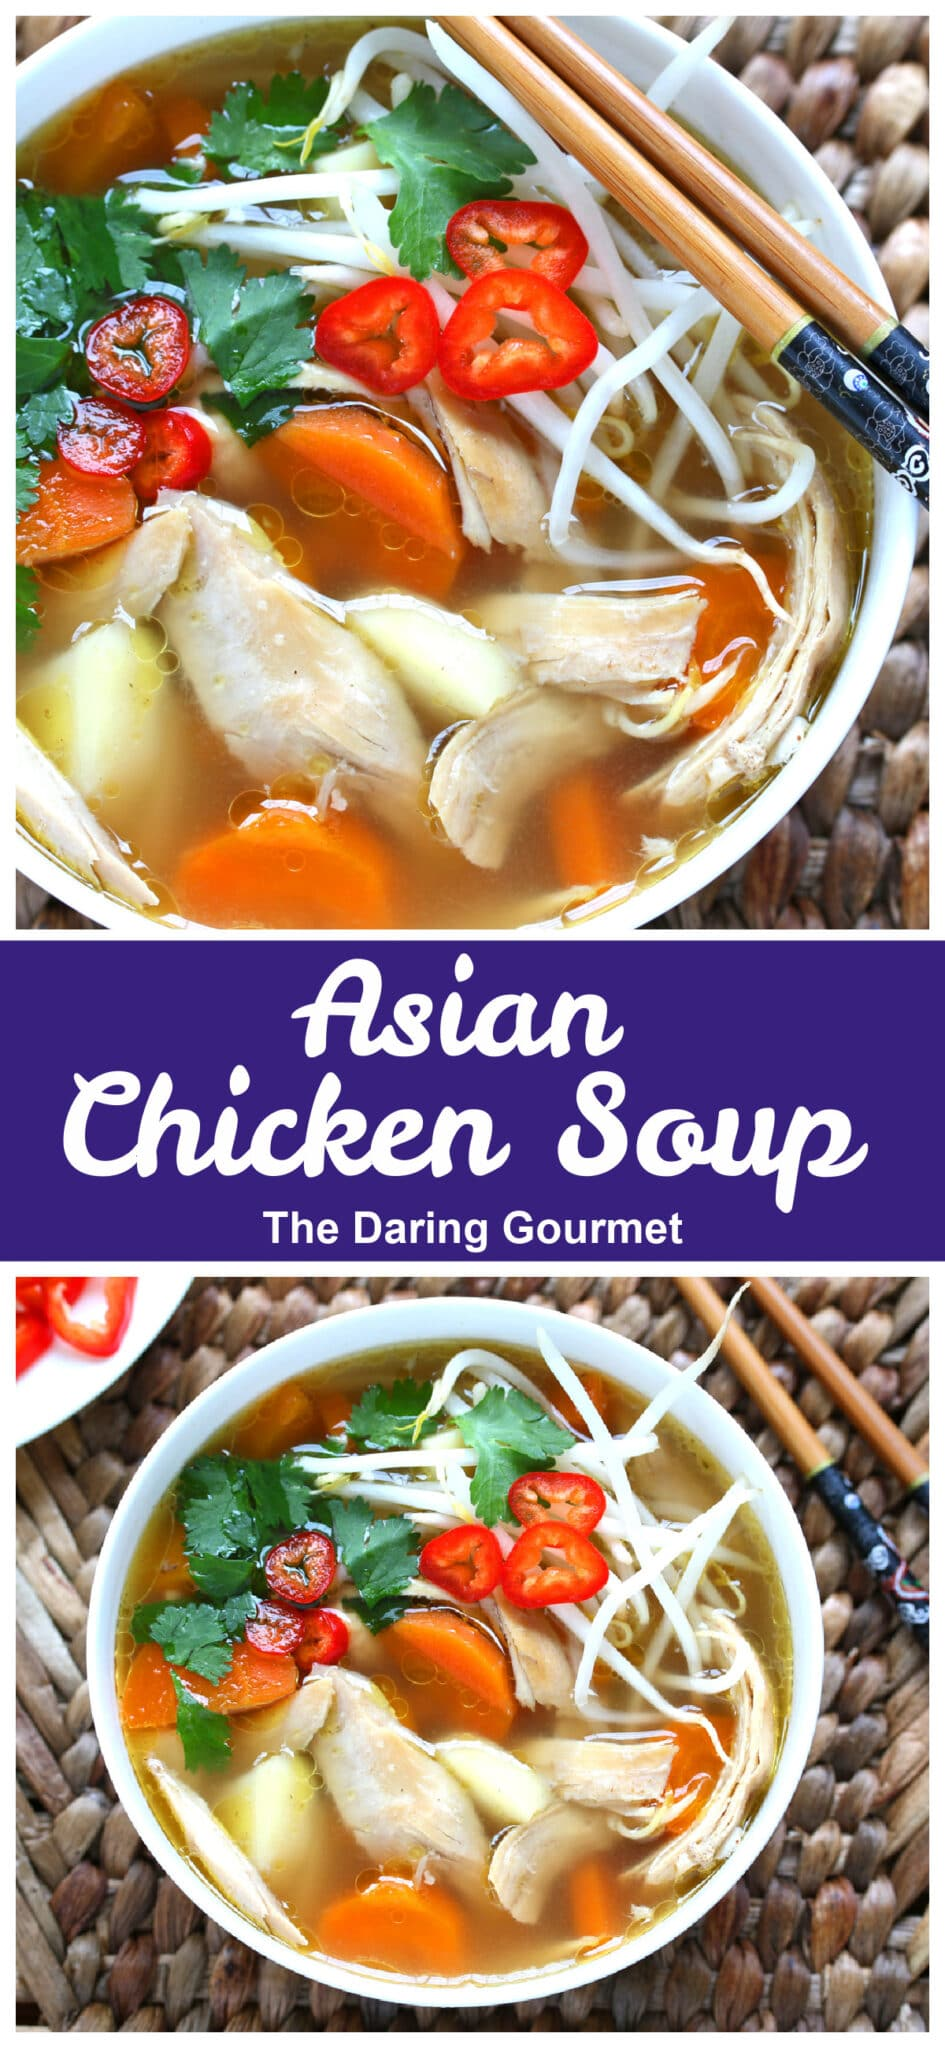 Asian chicken soup recipe Chinese Indonesian vegetables spices spiced lemongrass healthy gluten free